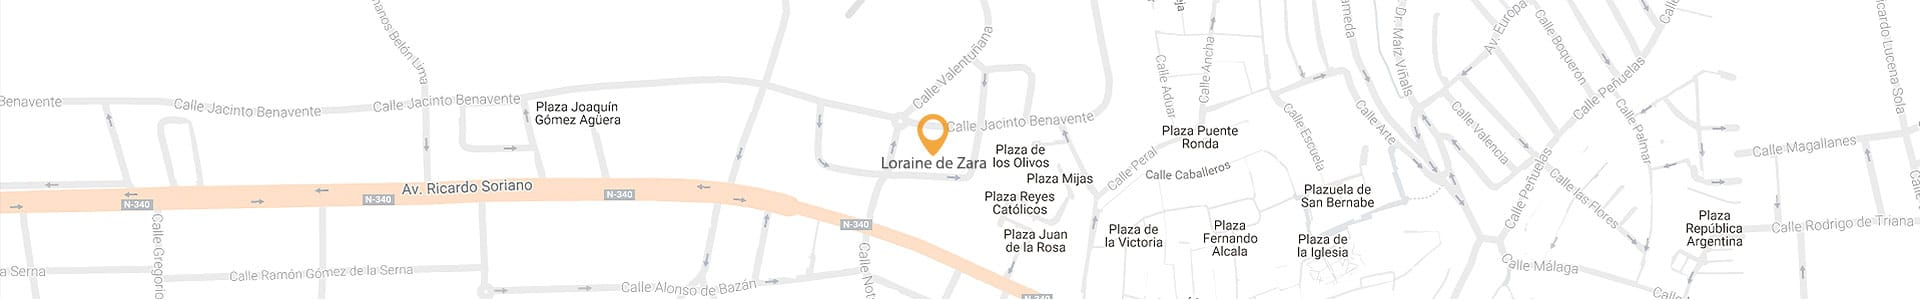 Loraine de Zara location